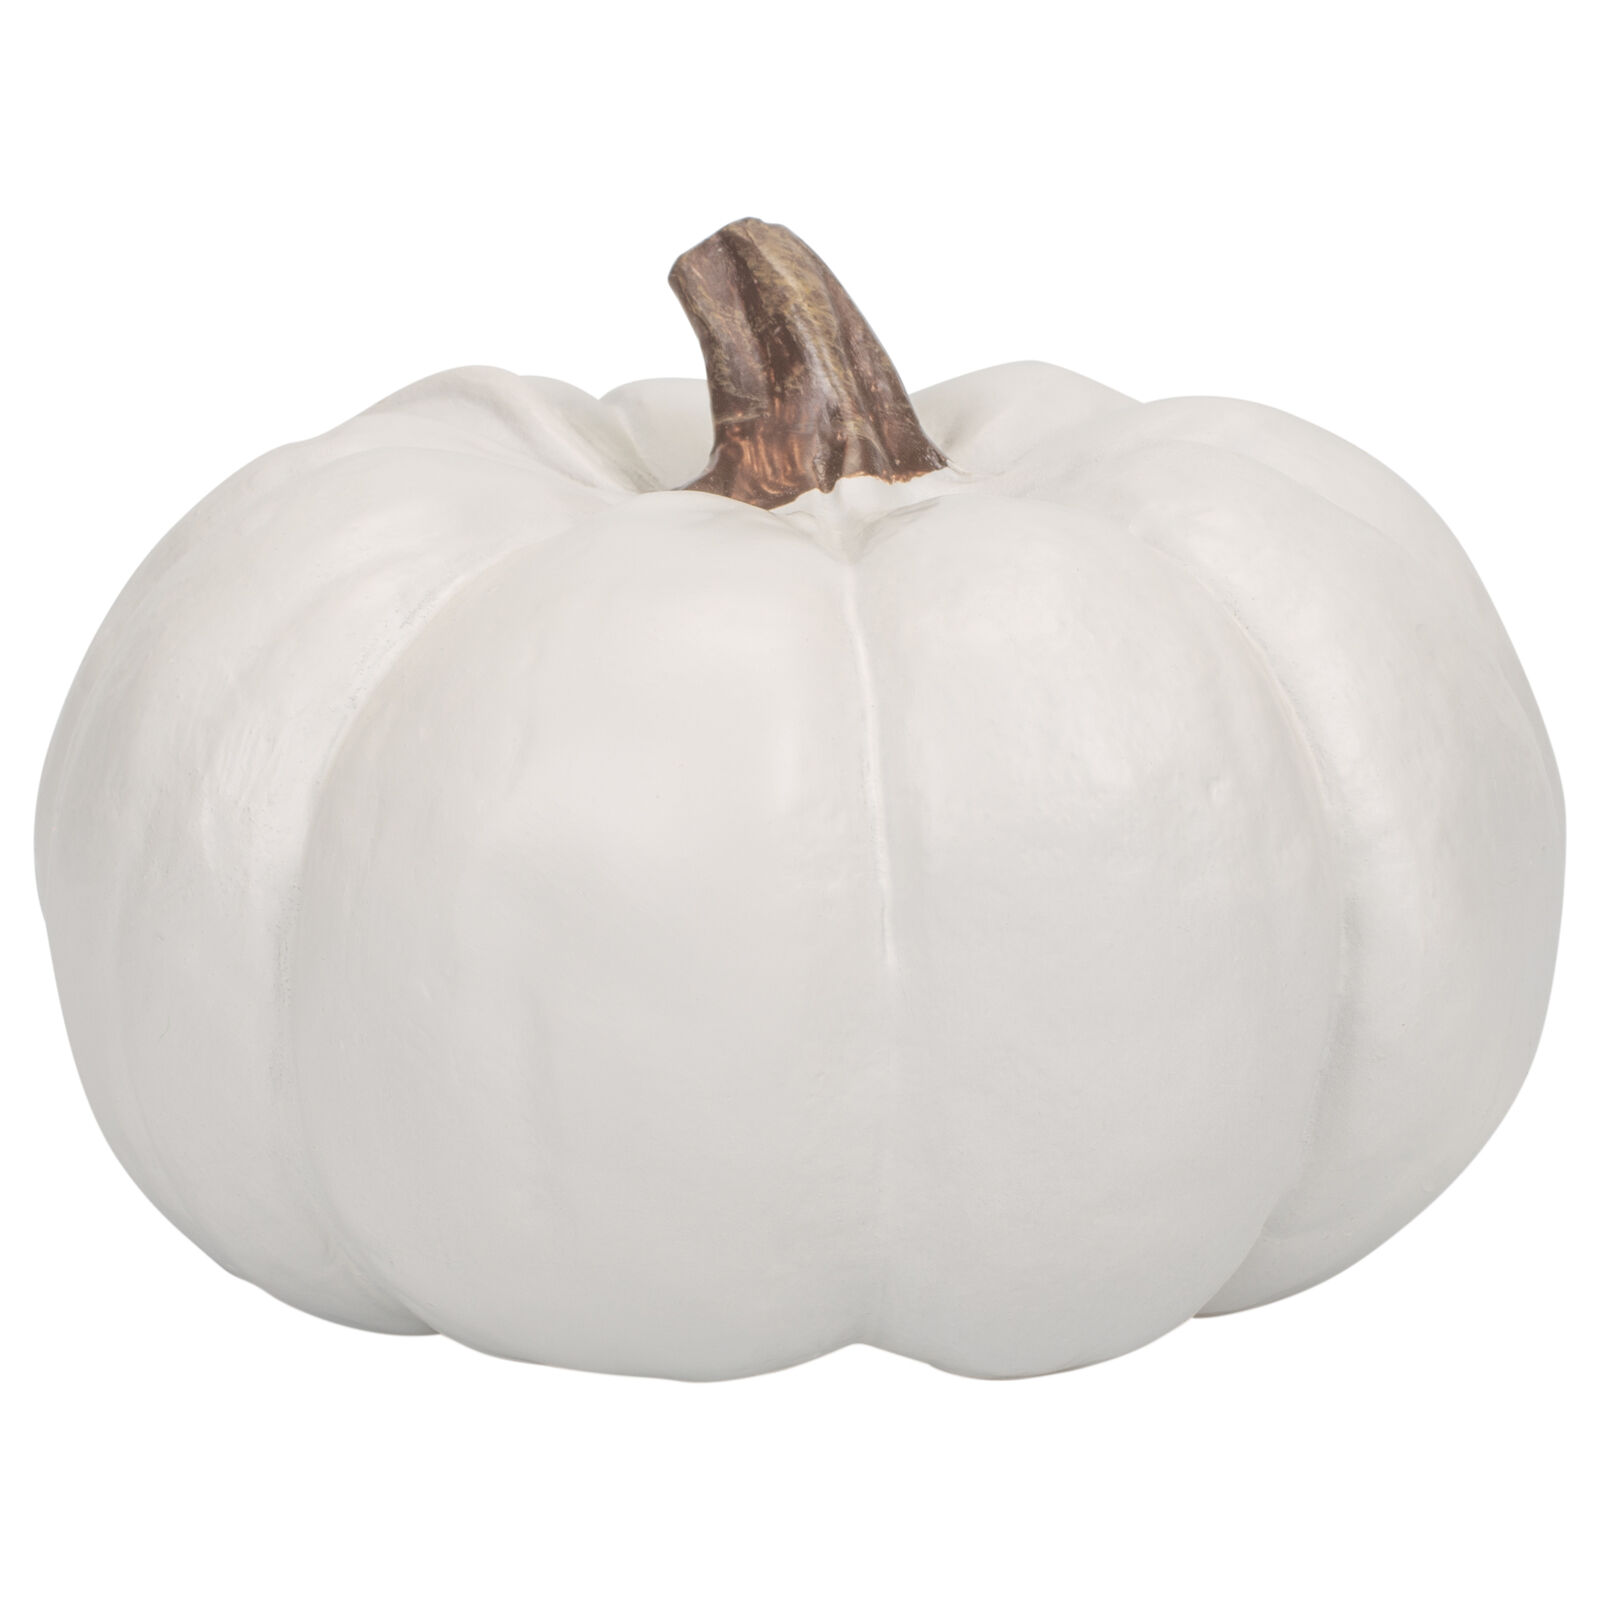 Elanze Designs Classic White 6 inch Resin Harvest Decorative